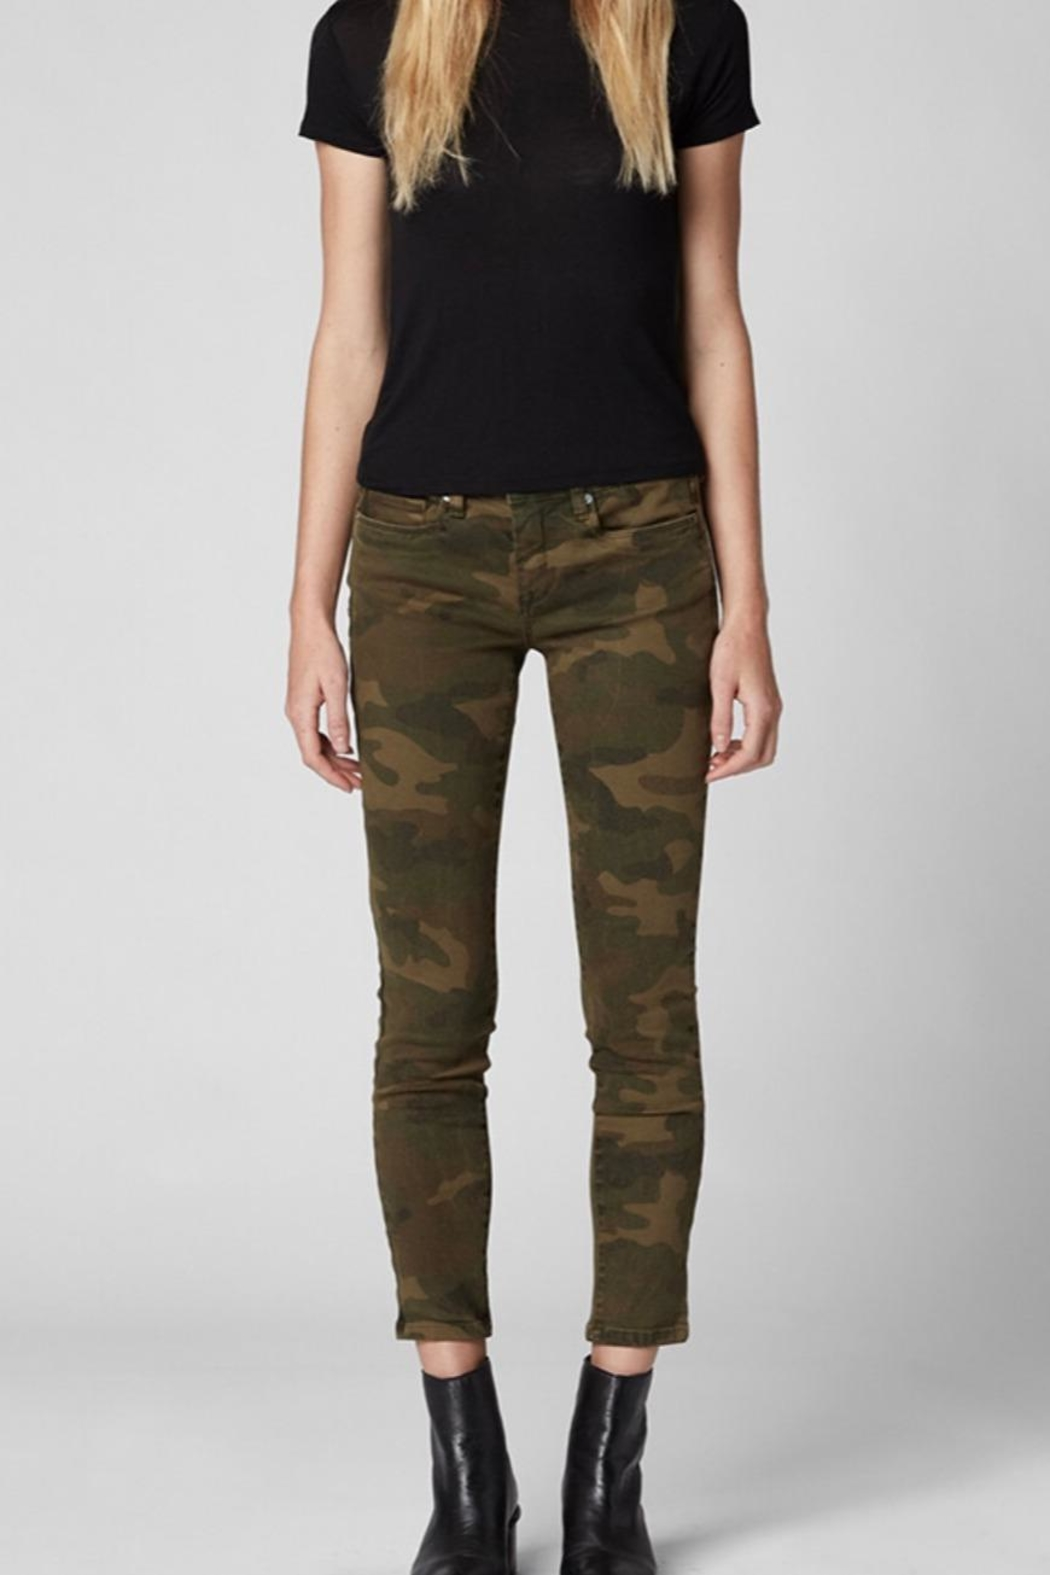 Blank NYC Camo Denim Pants - Main Image